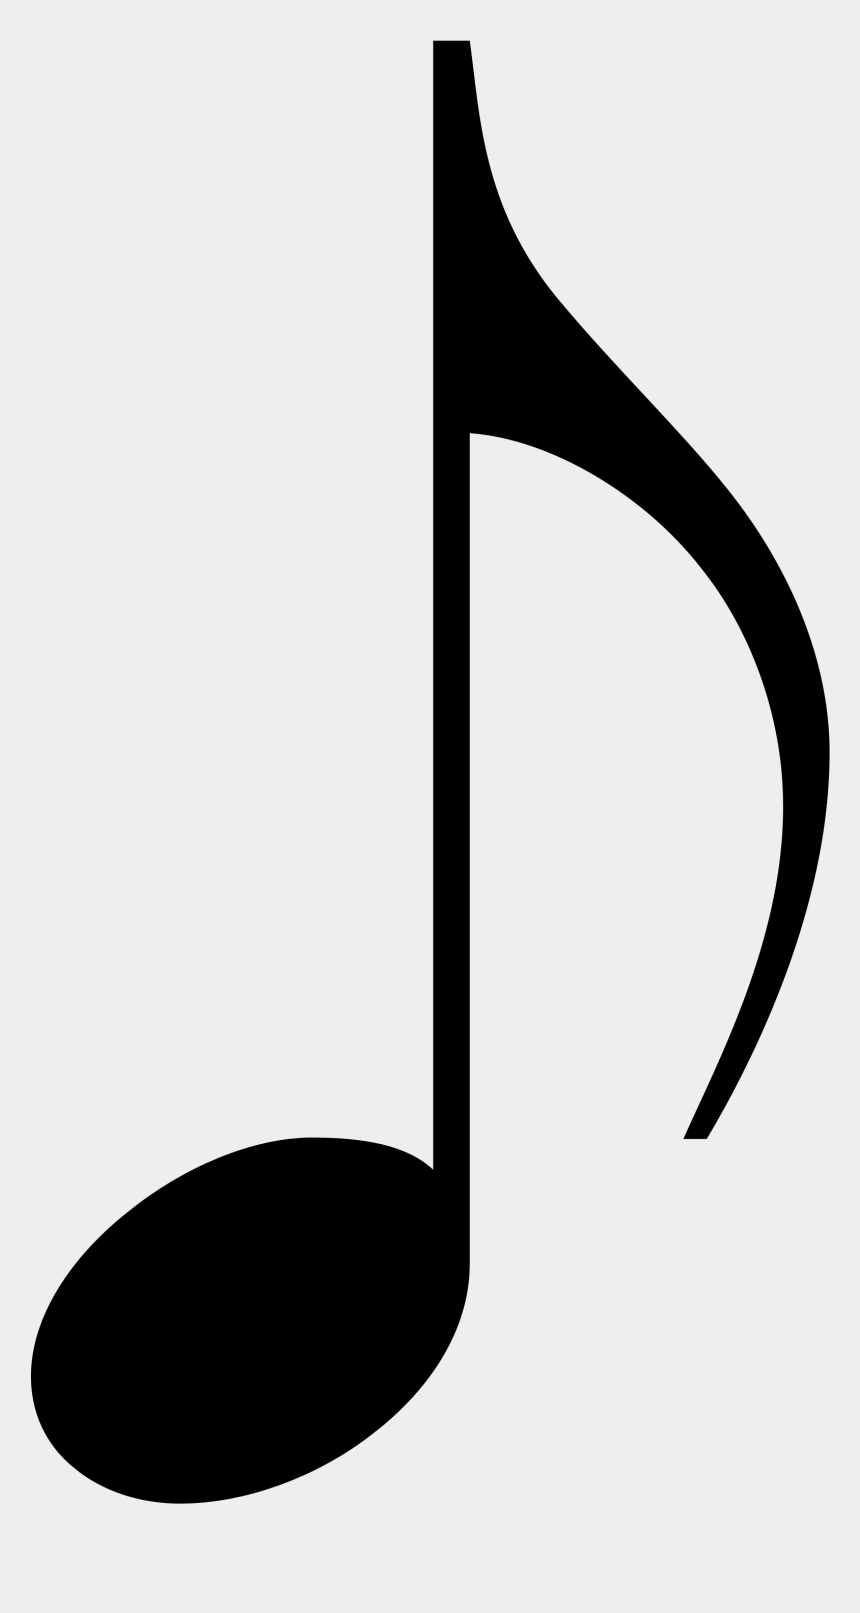 music note clipart, Cartoons - Hd Png Images Music Notes Music Notes Clipart Vintage - Artsy Music Note